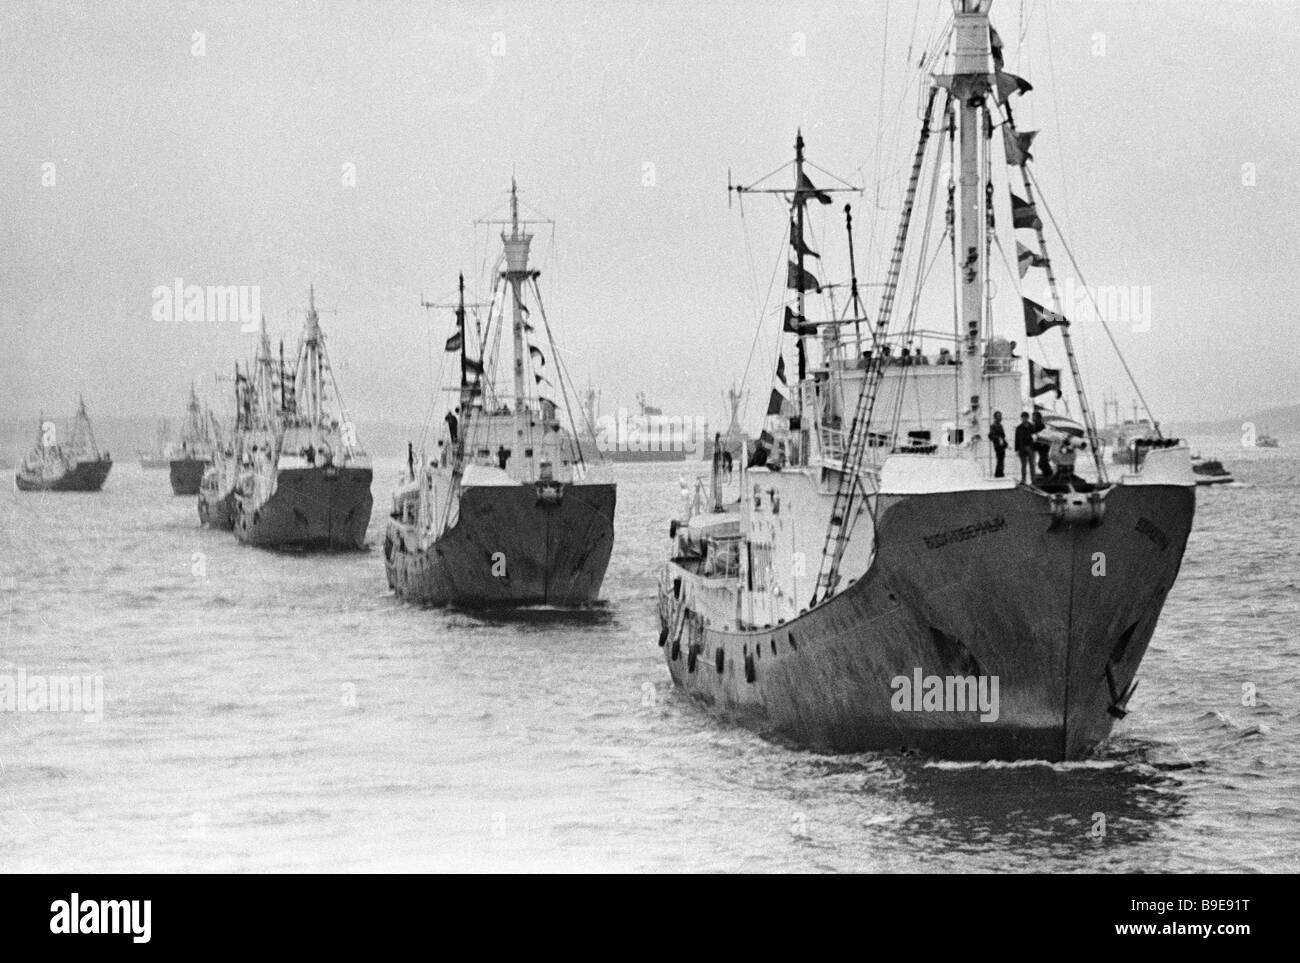 The far eastern whaling flotilla Soviet Russia in the Bosporus Eastern Strait on its way to Vladivostok - Stock Image